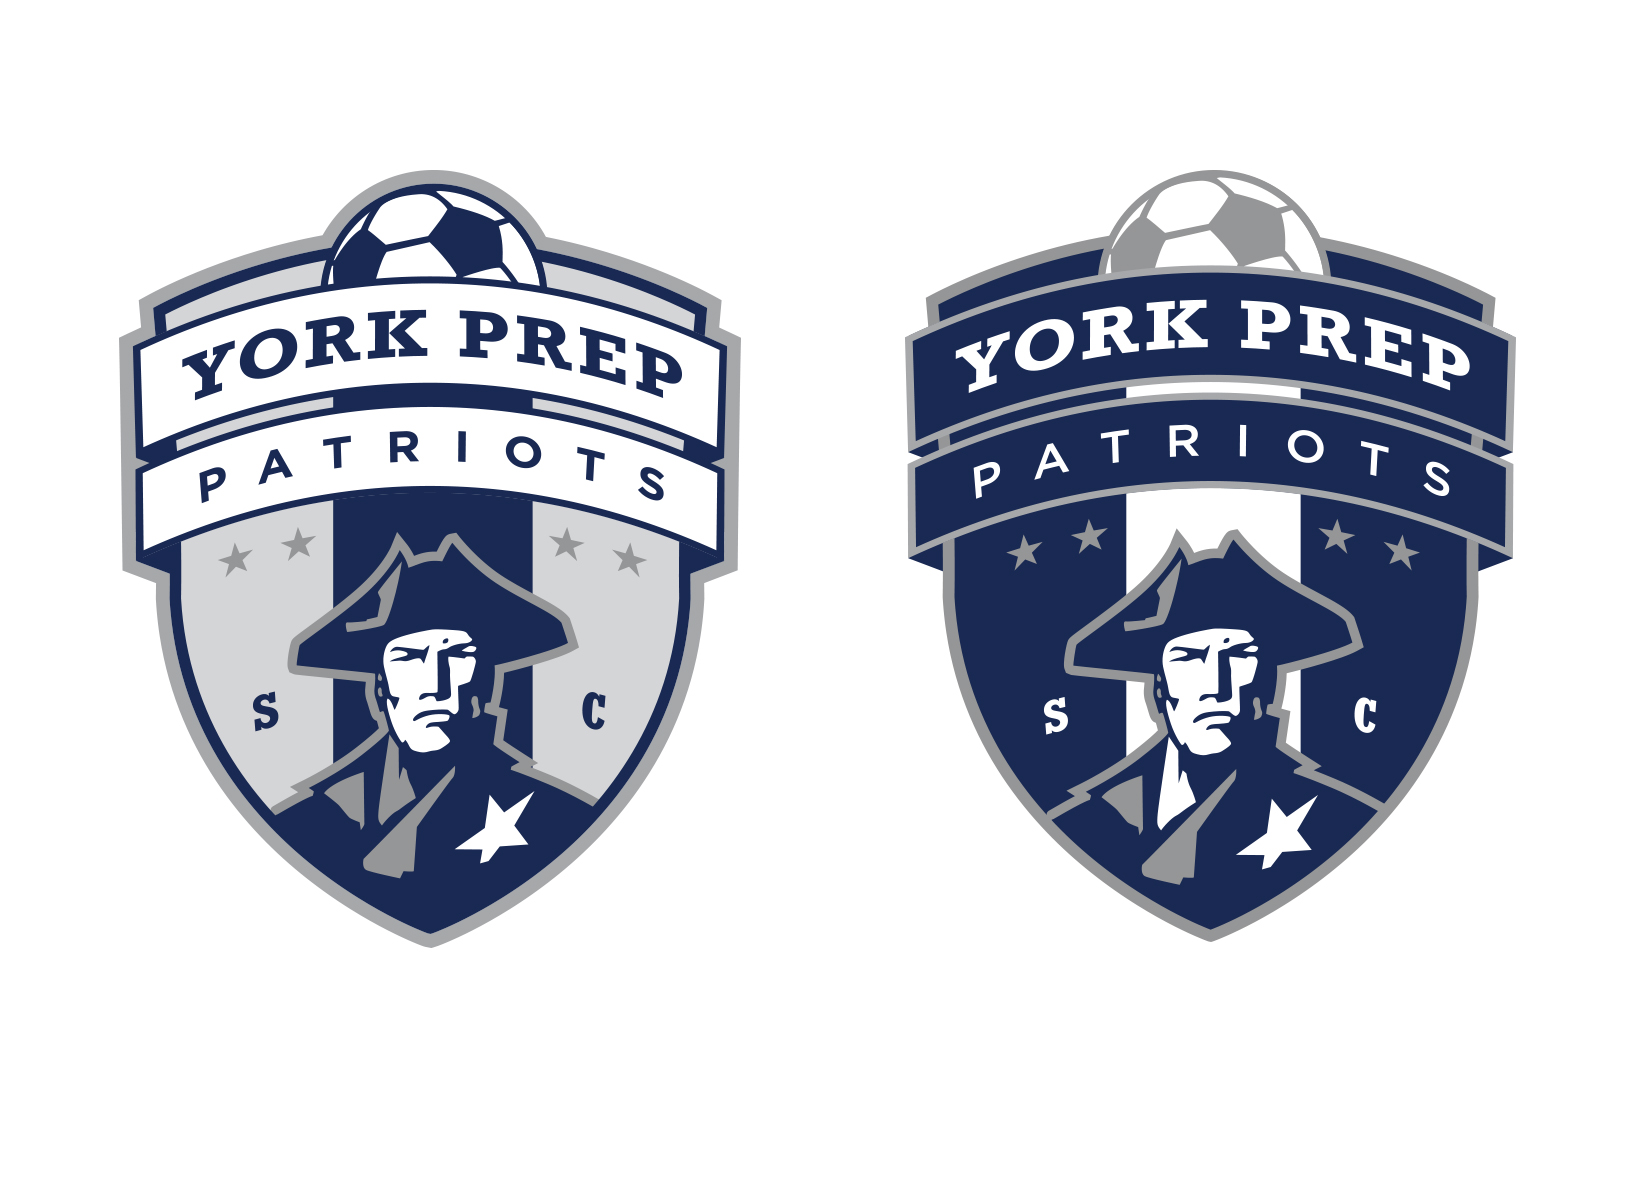 york-prep-patriots-sc-crest-options-2.jpg